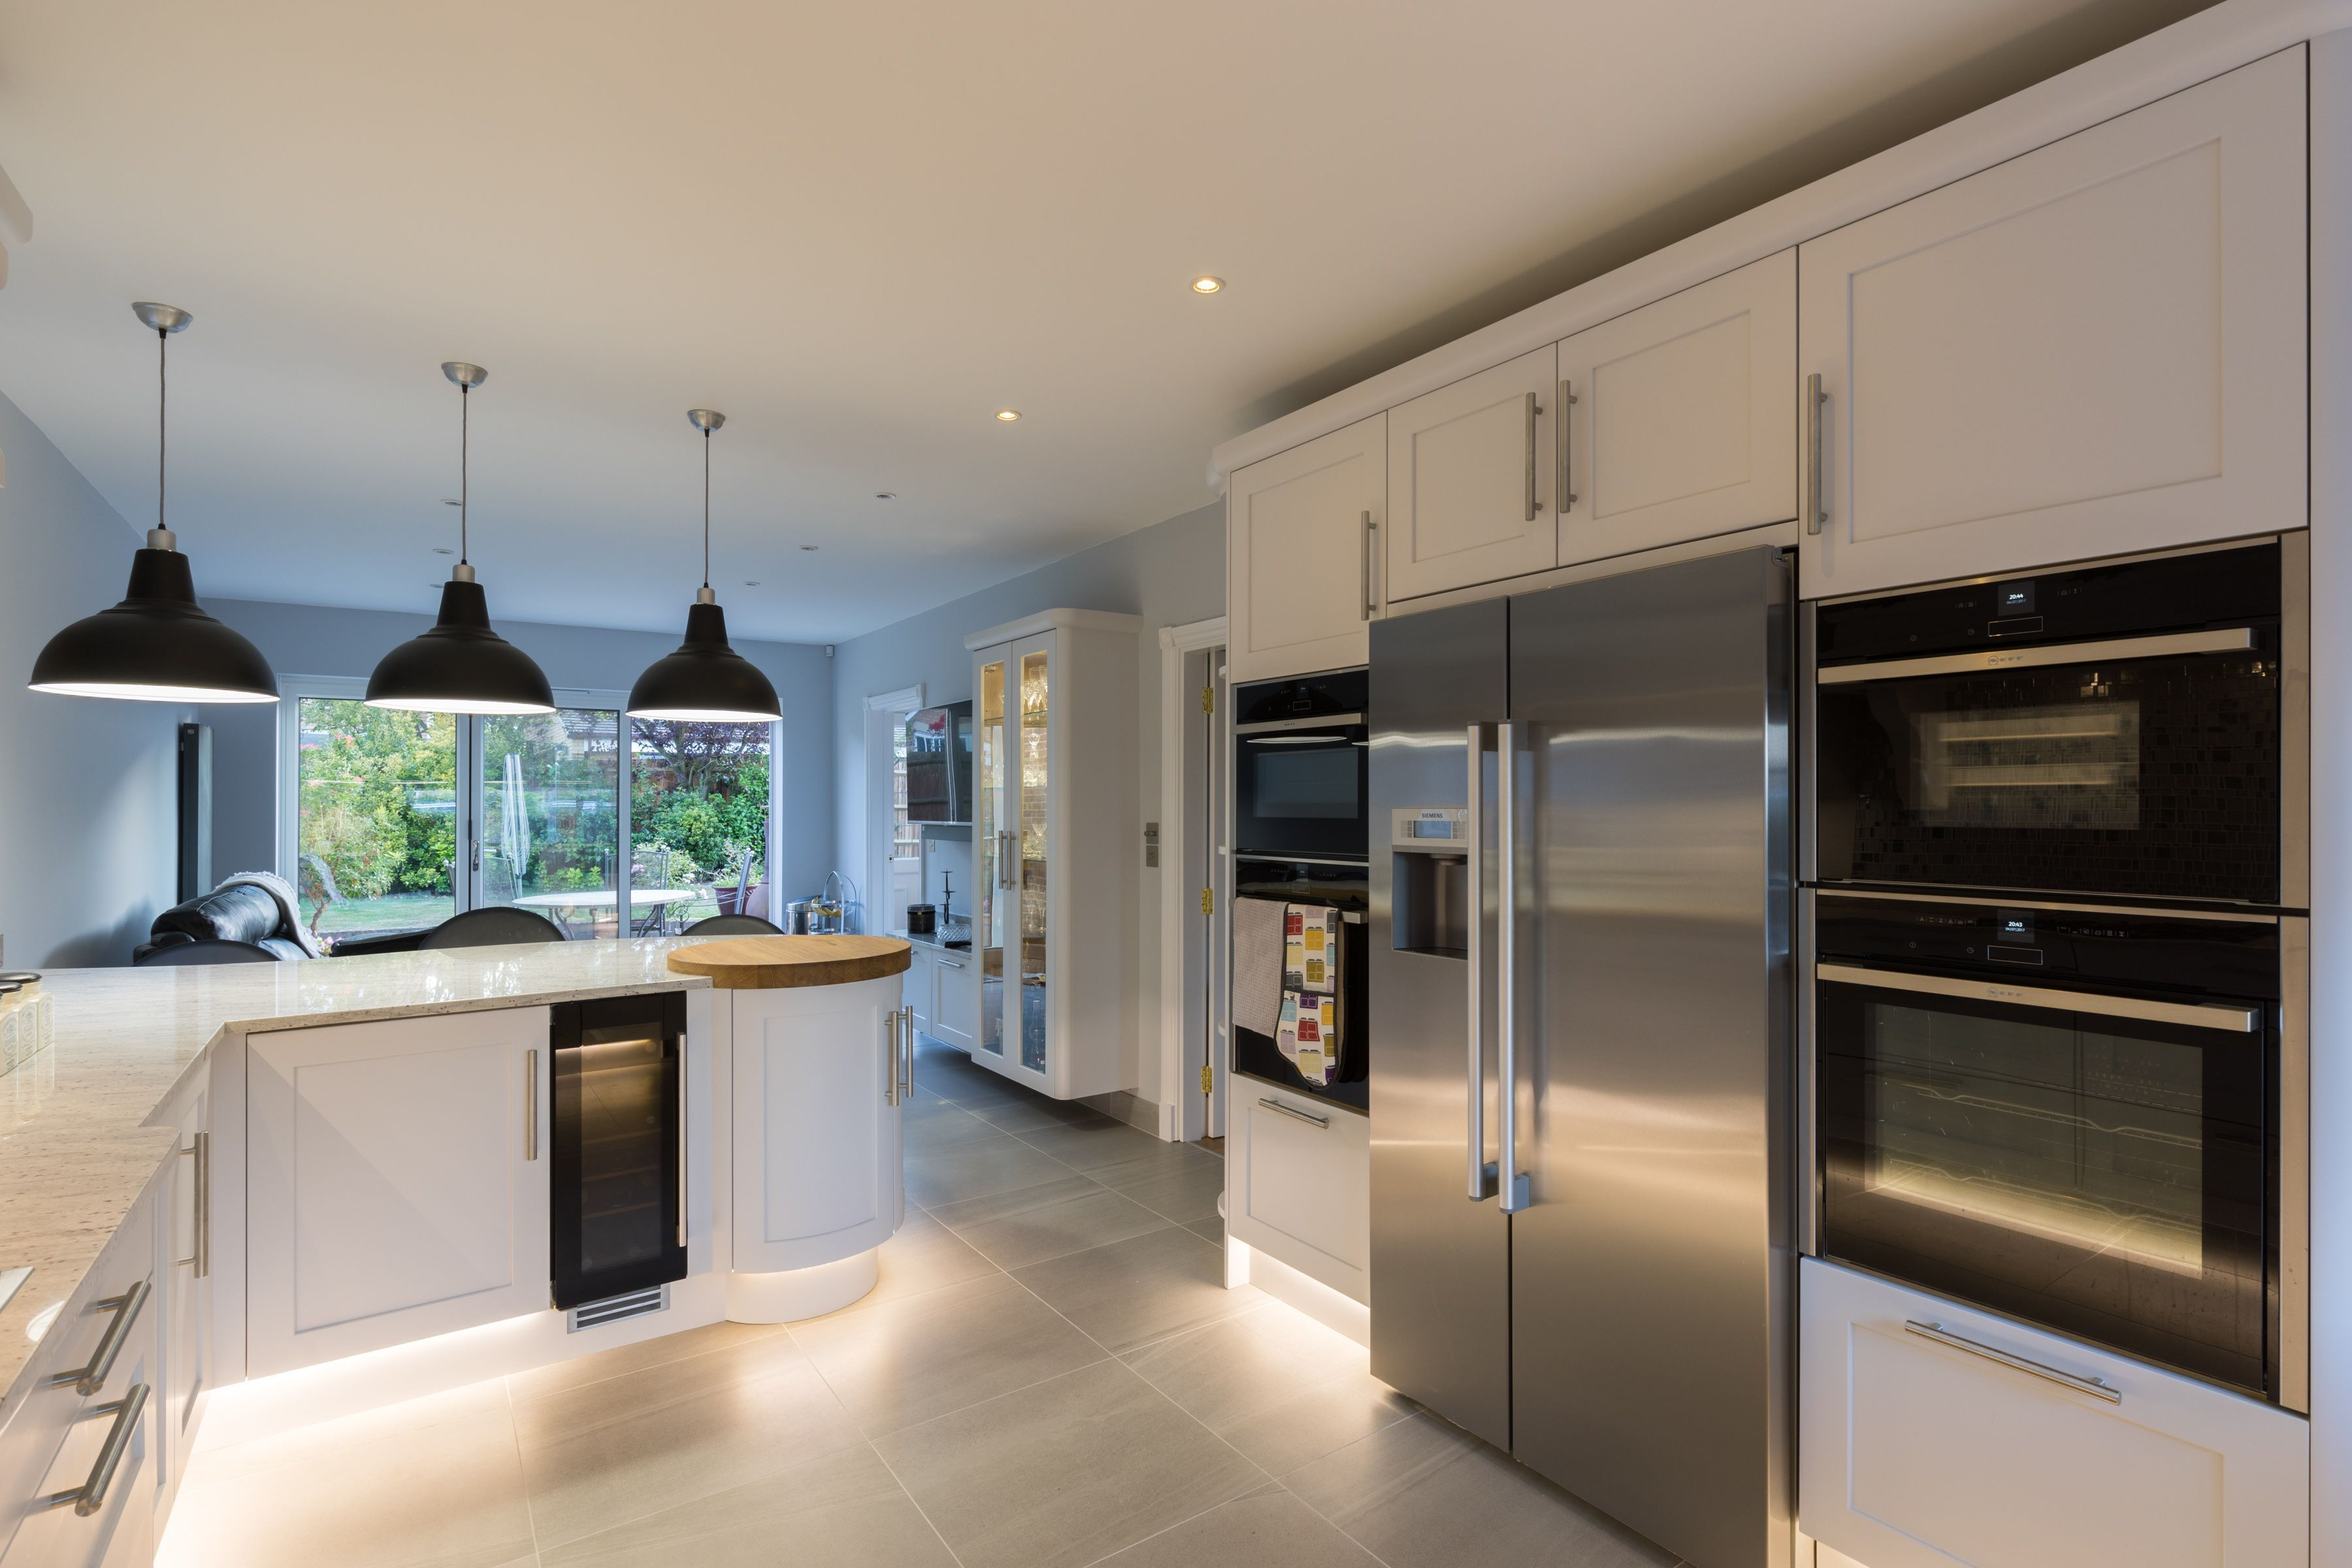 This kitchen was the dream of its owners who wanted a bright modern